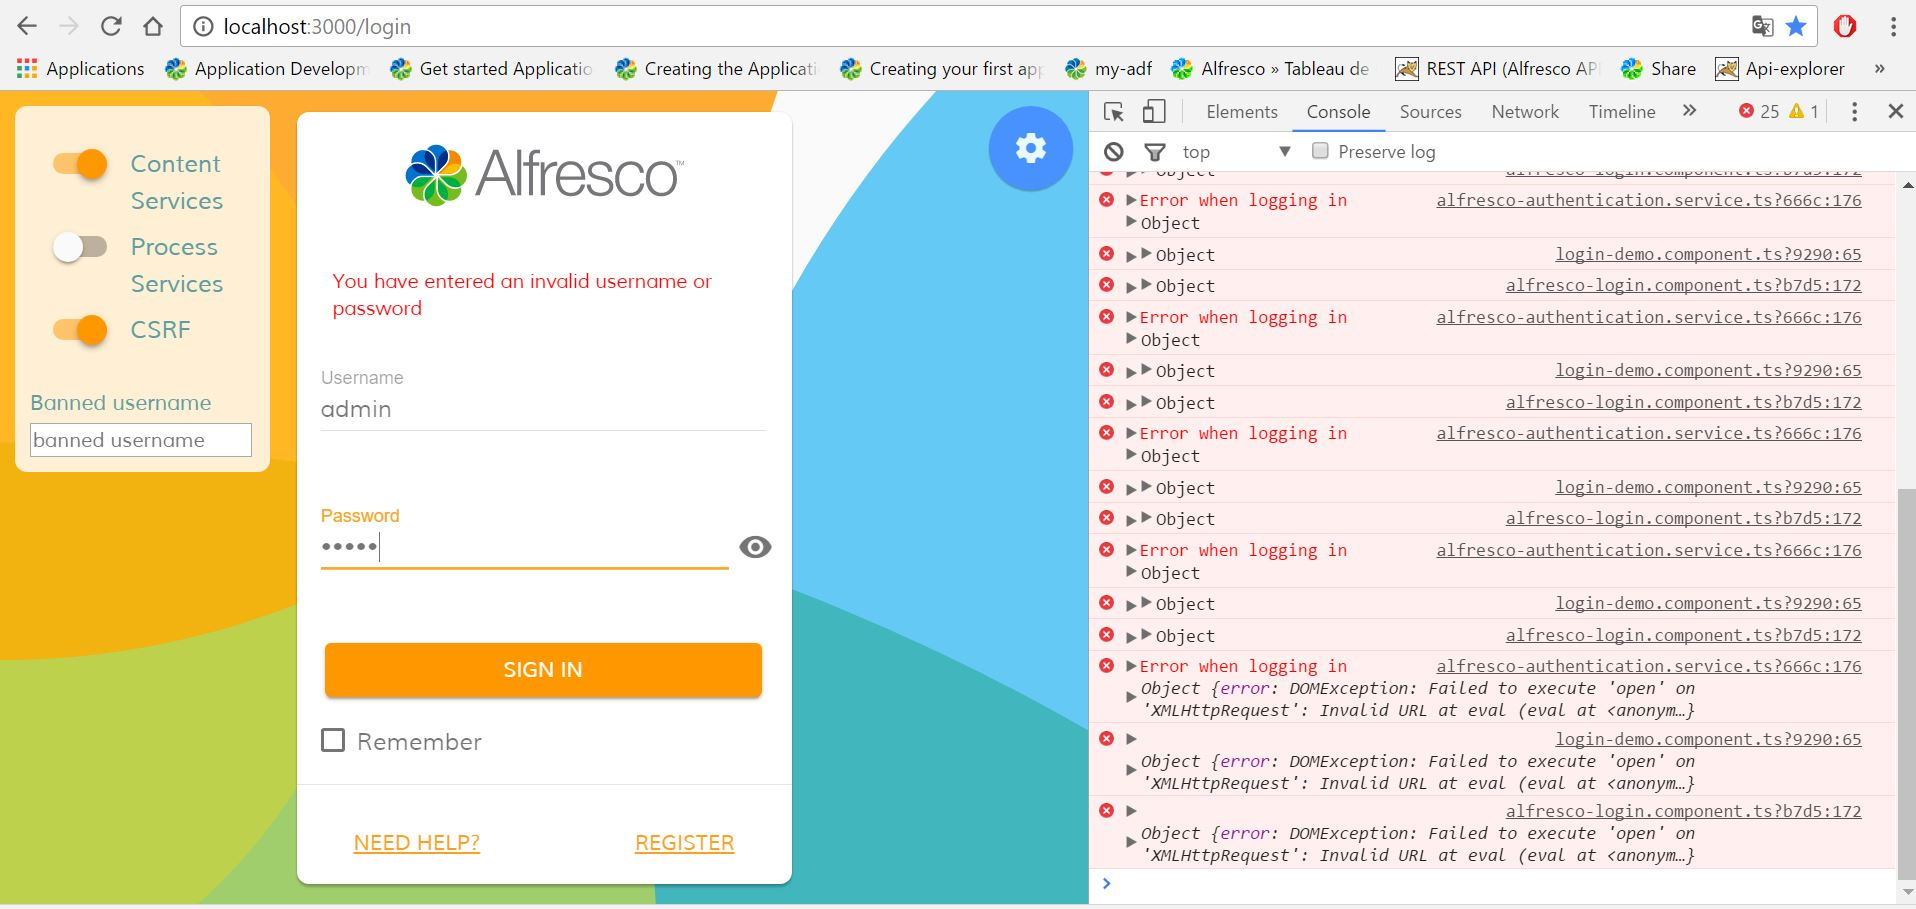 Alfresco ADF login page